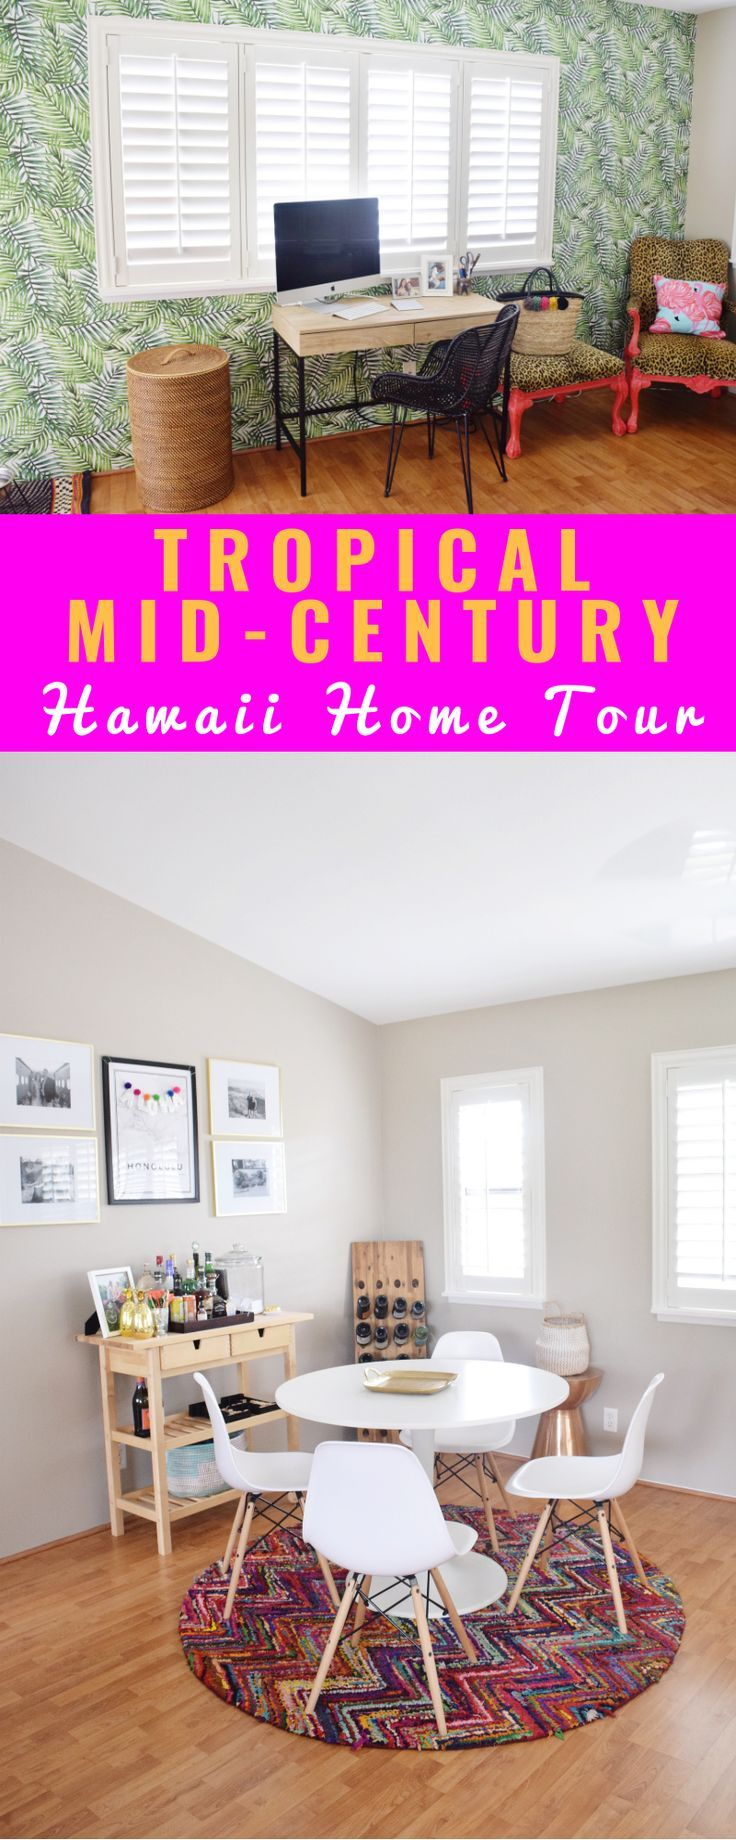 Our Hawaiian Home Apartment Therapy Feature   Pinterest ...